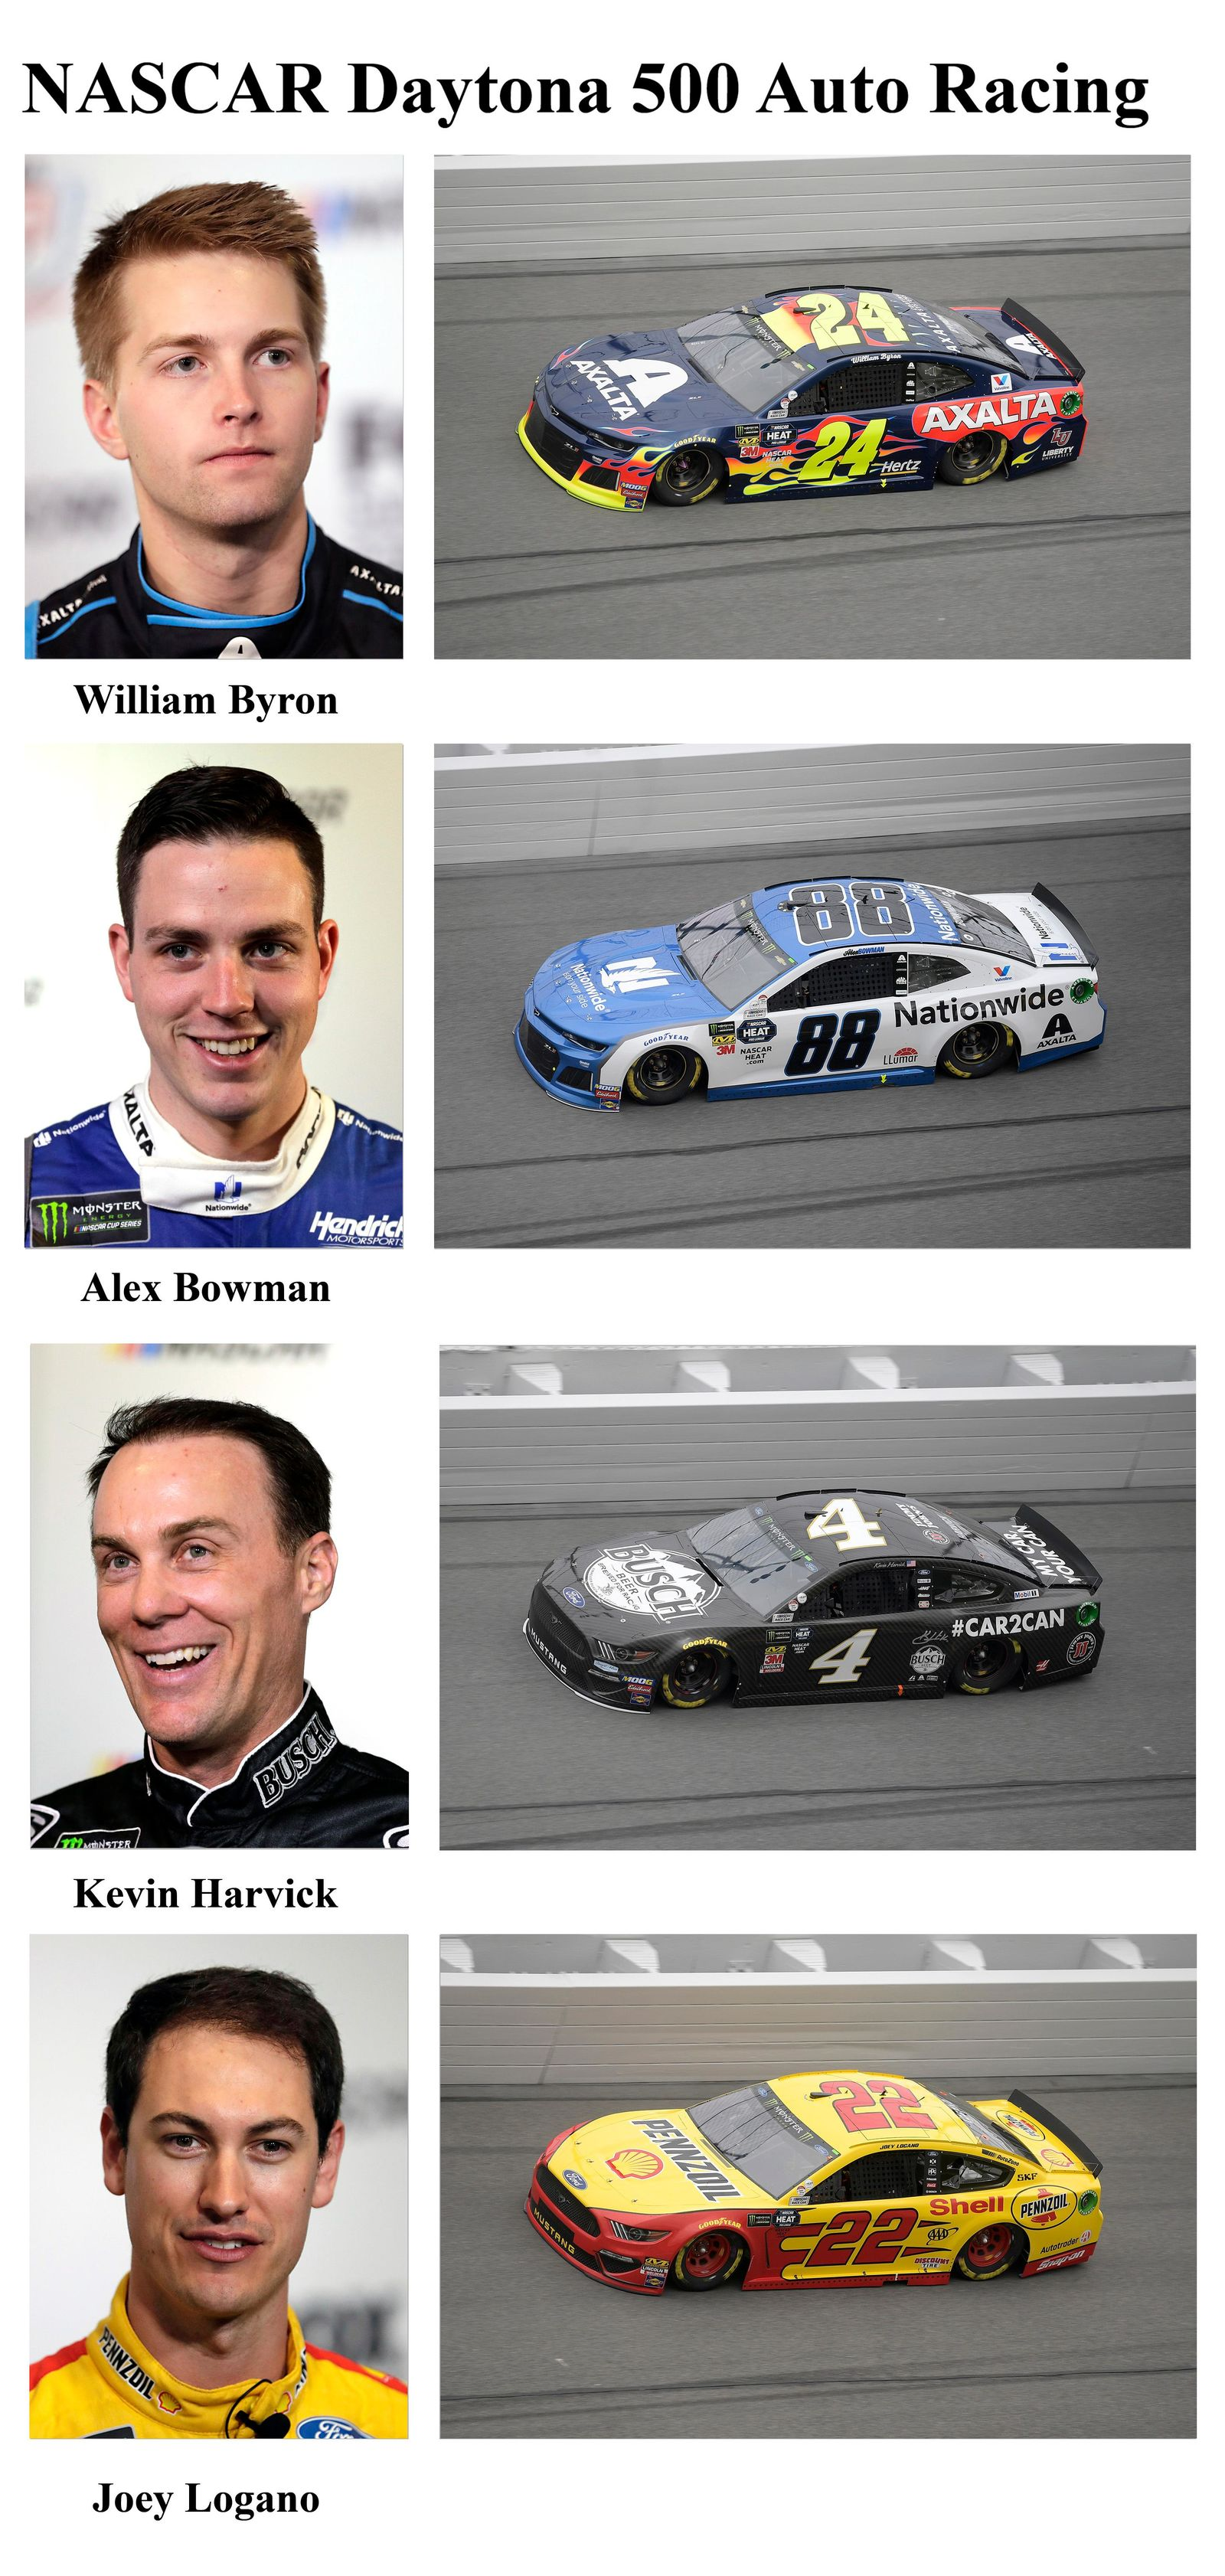 In these photos taken in February 2019, qualifying drivers and their cars in the starting field for Sunday's NASCAR Daytona 500 auto race are shown at Daytona International Speedway in Daytona Beach, Fla. They are, from top, Row 1, William Byron, Alex Bowman, Row 2, Kevin Harvick and Joey Logano. (AP Photo)